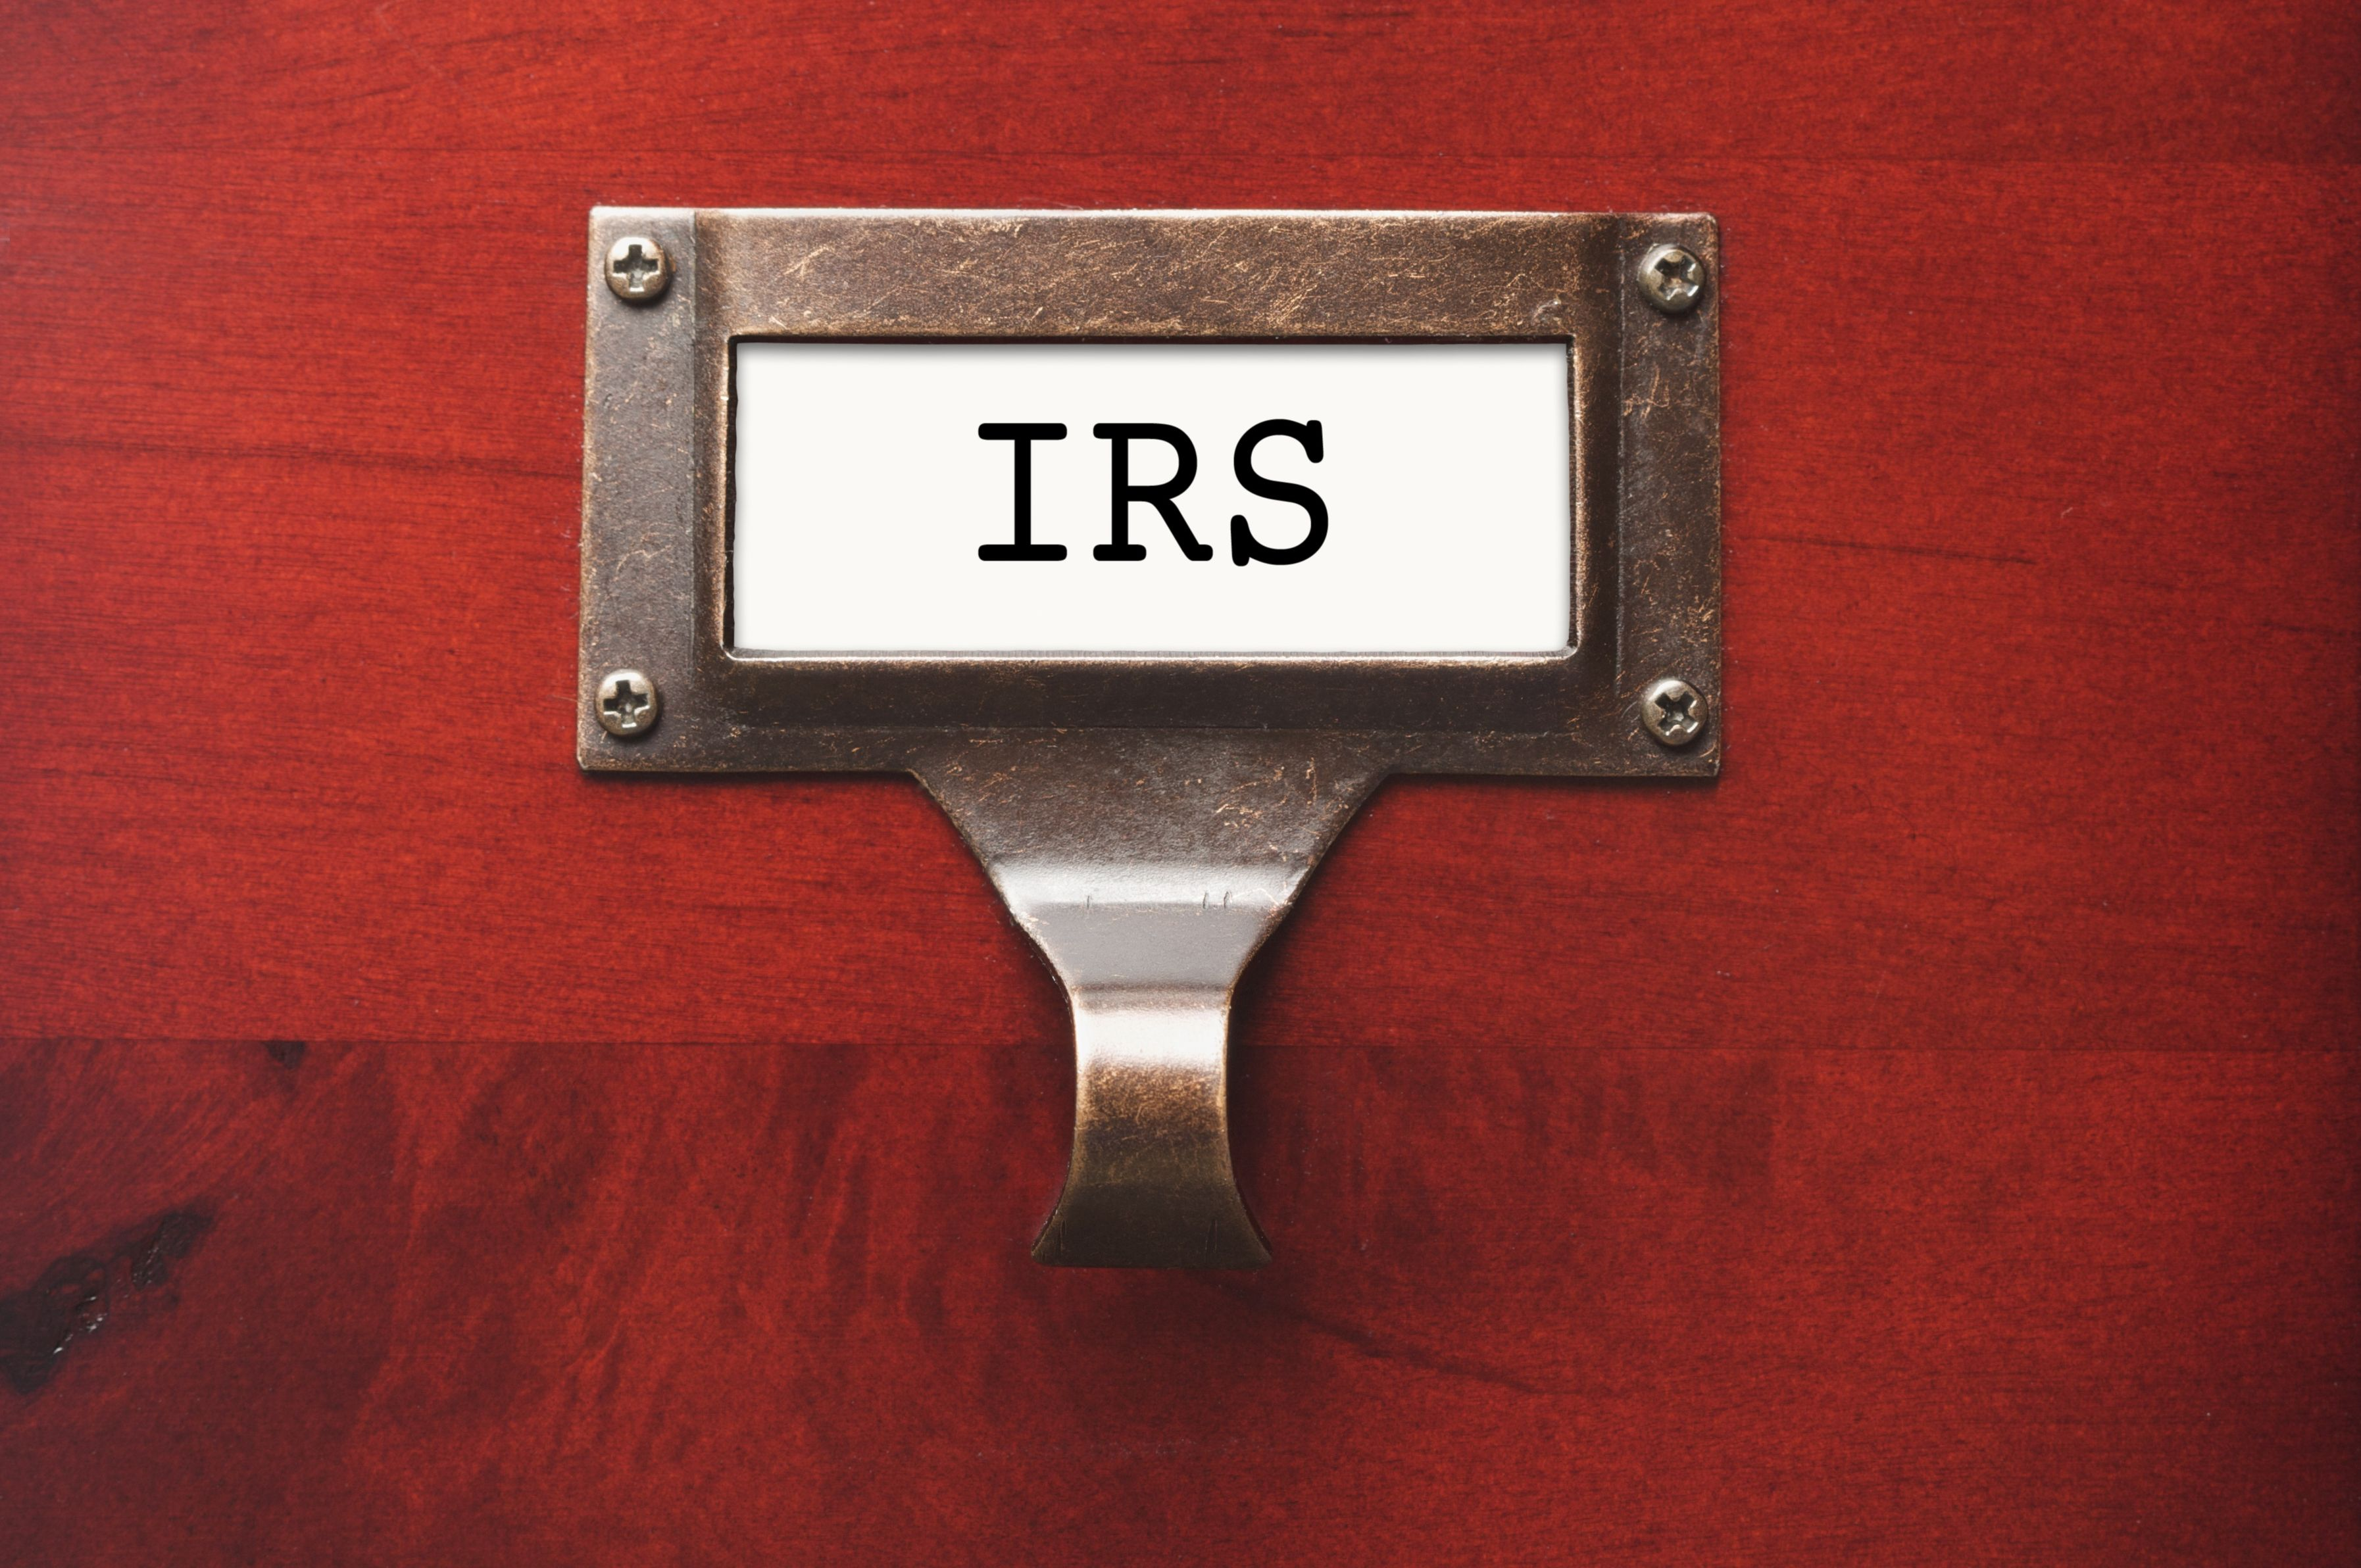 IRS label on file cabinet